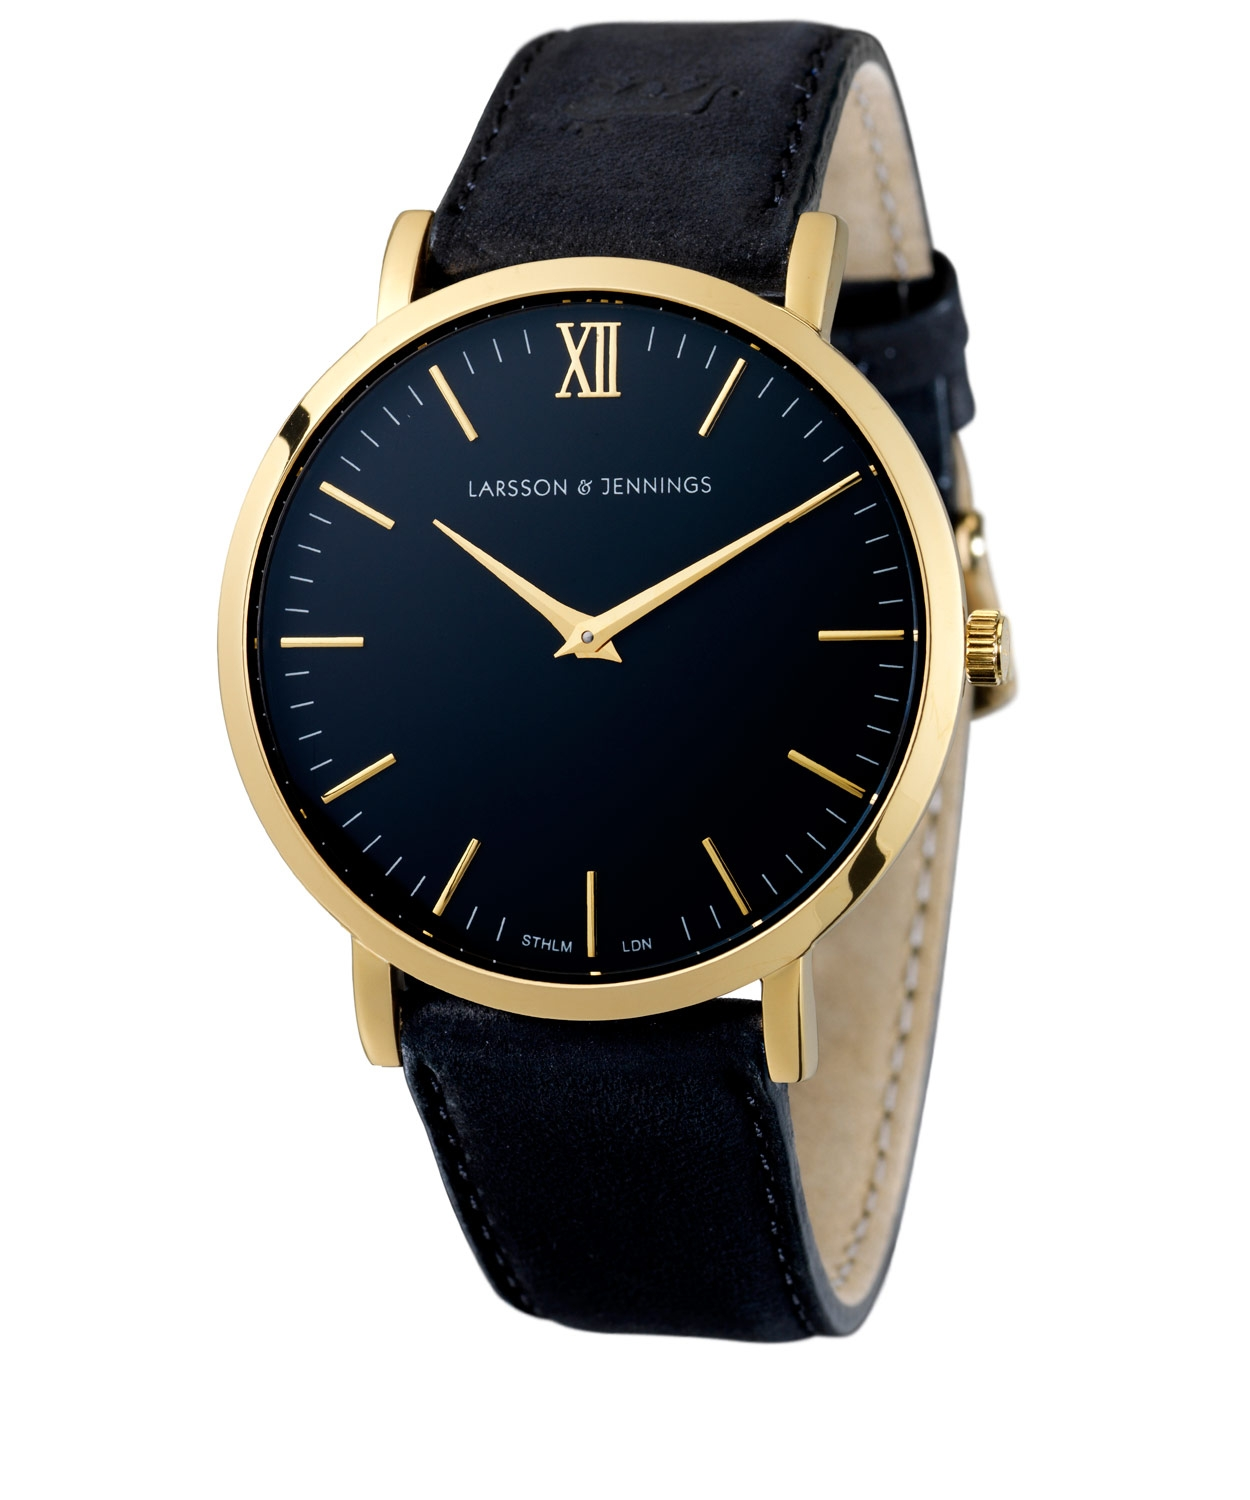 16a5d714421a Lugano 40mm Black-Gold Leather Watch